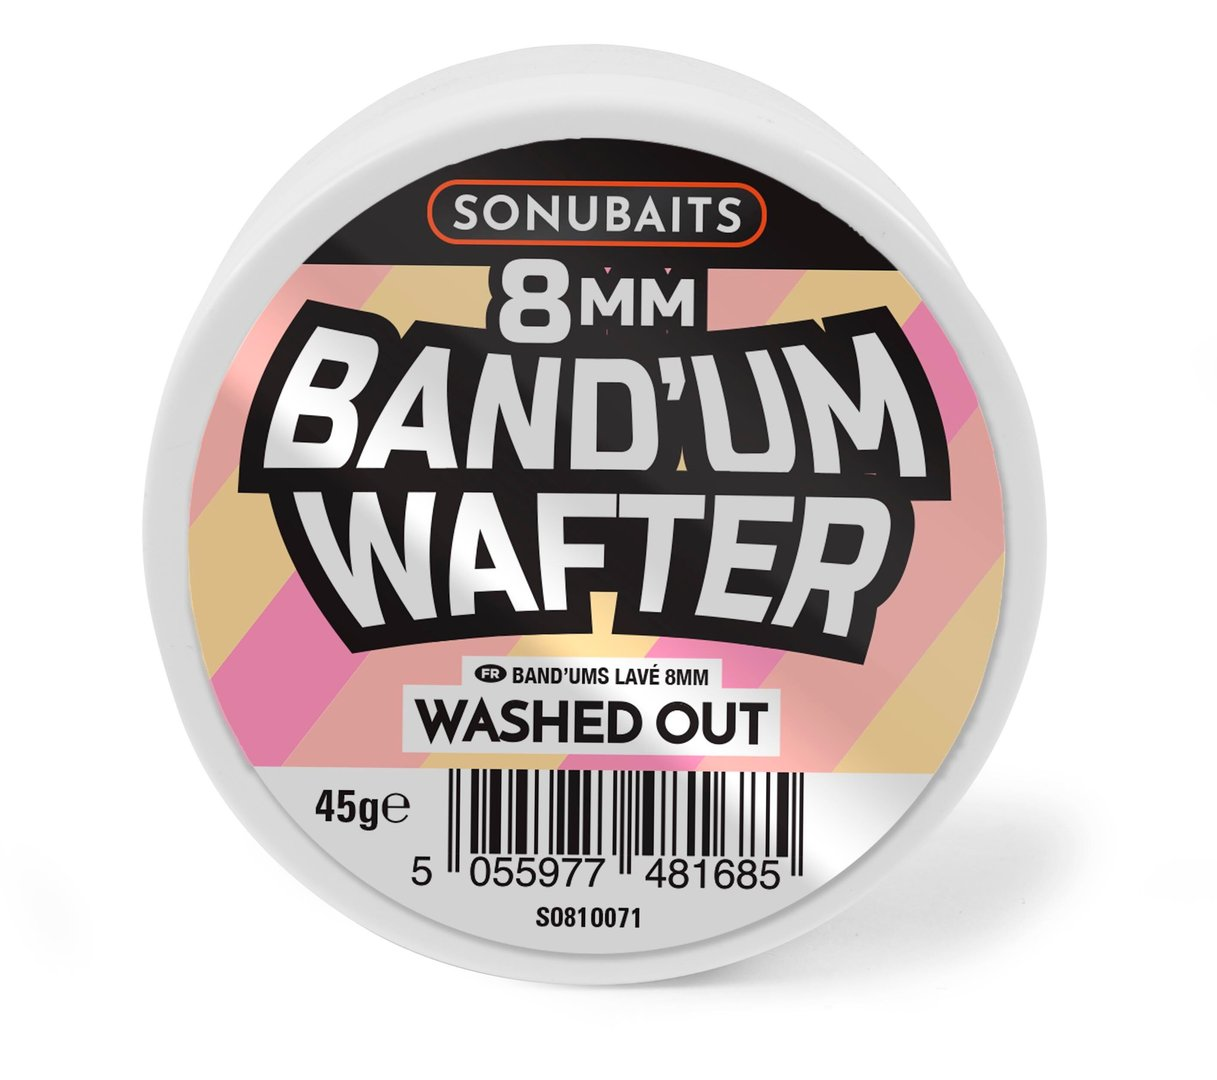 Sonubaits Band'um Wafter - Washed Out - 8mm